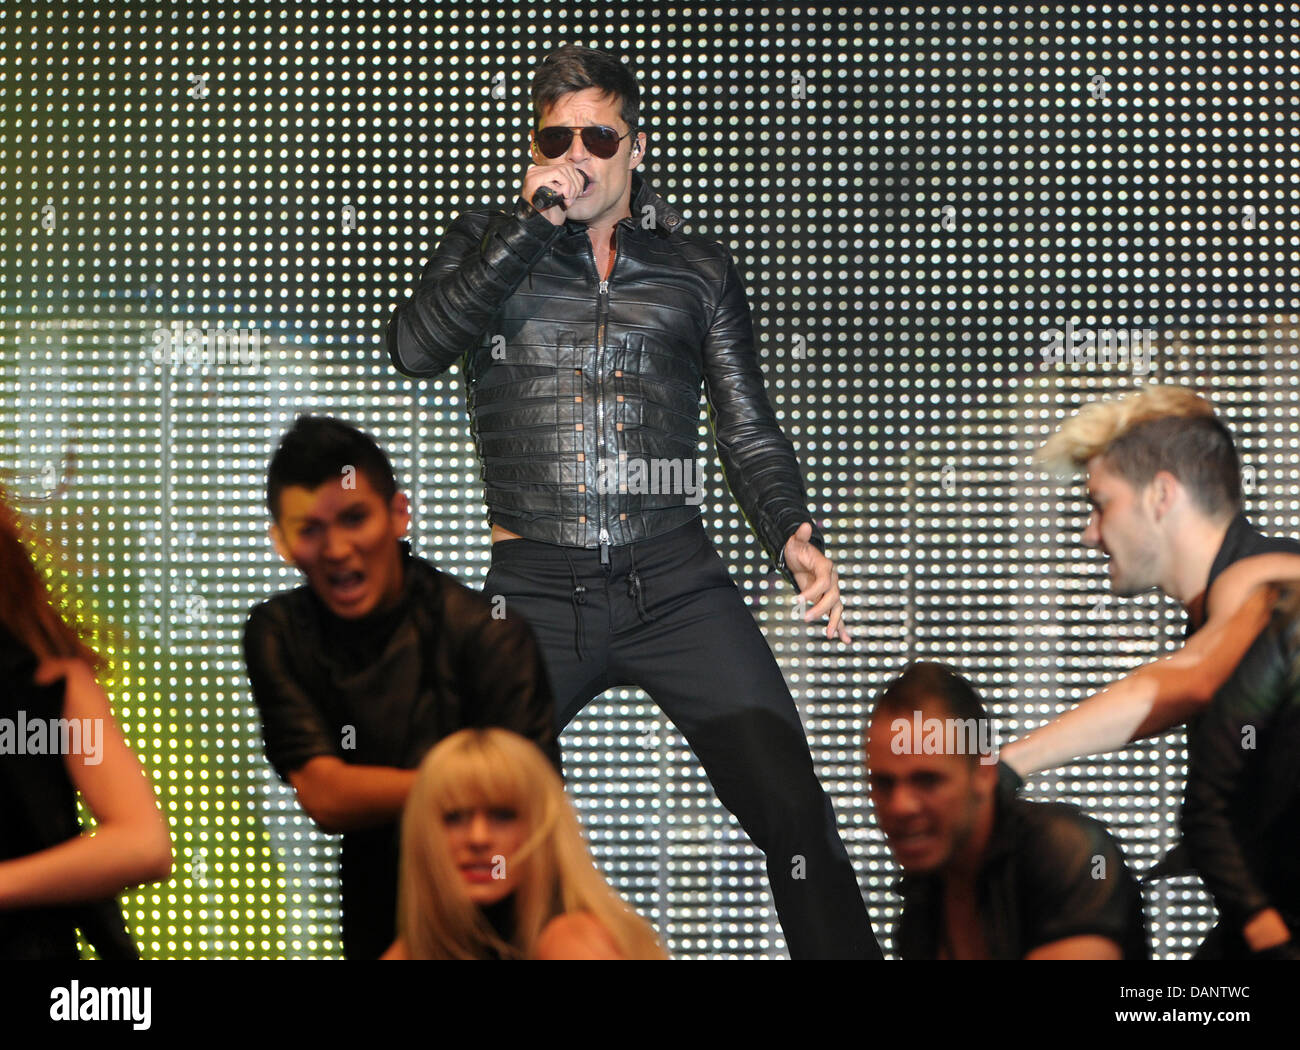 Latin pop singer Ricky Martin performs on stage during the Open Air Festival Arena of Pop in Mannheim, Germany, - Stock Image